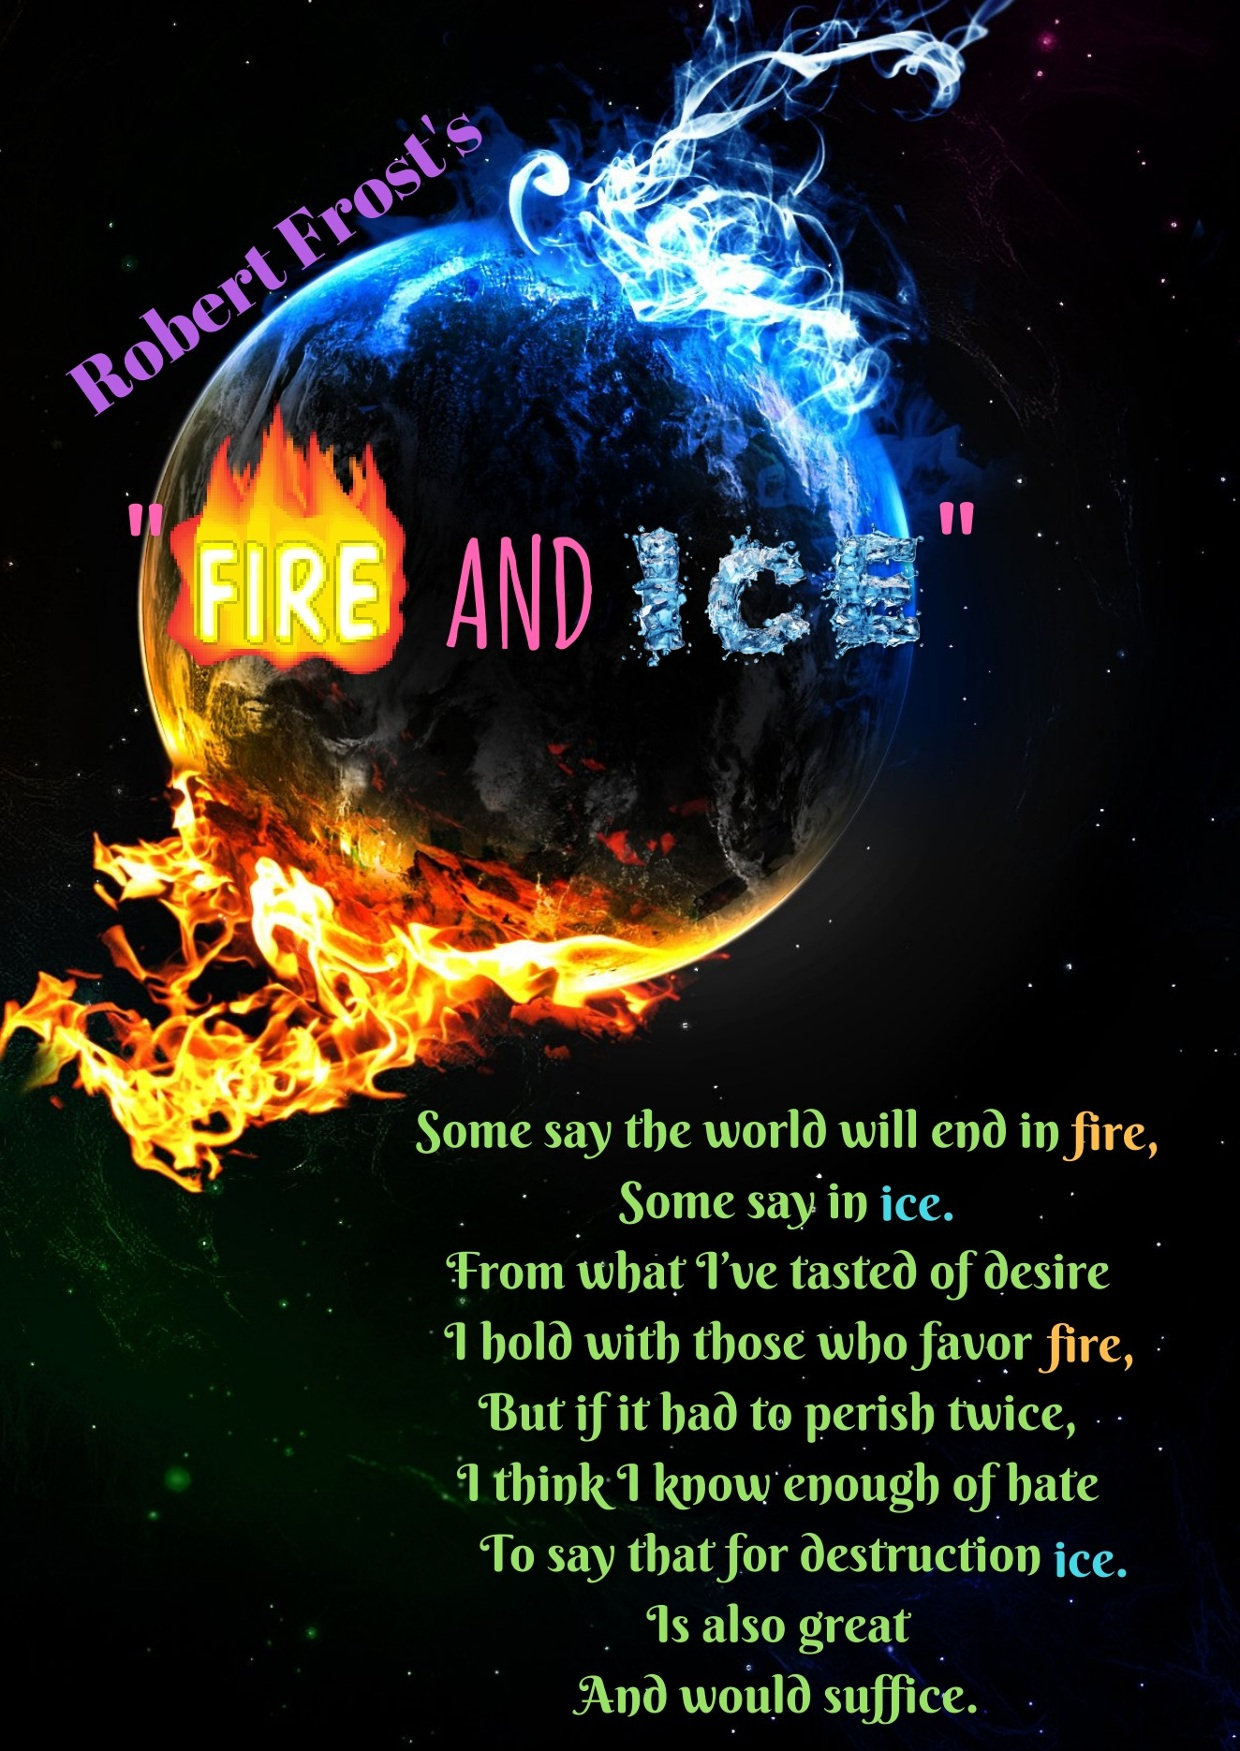 fire and ice poem meaning by robert frost